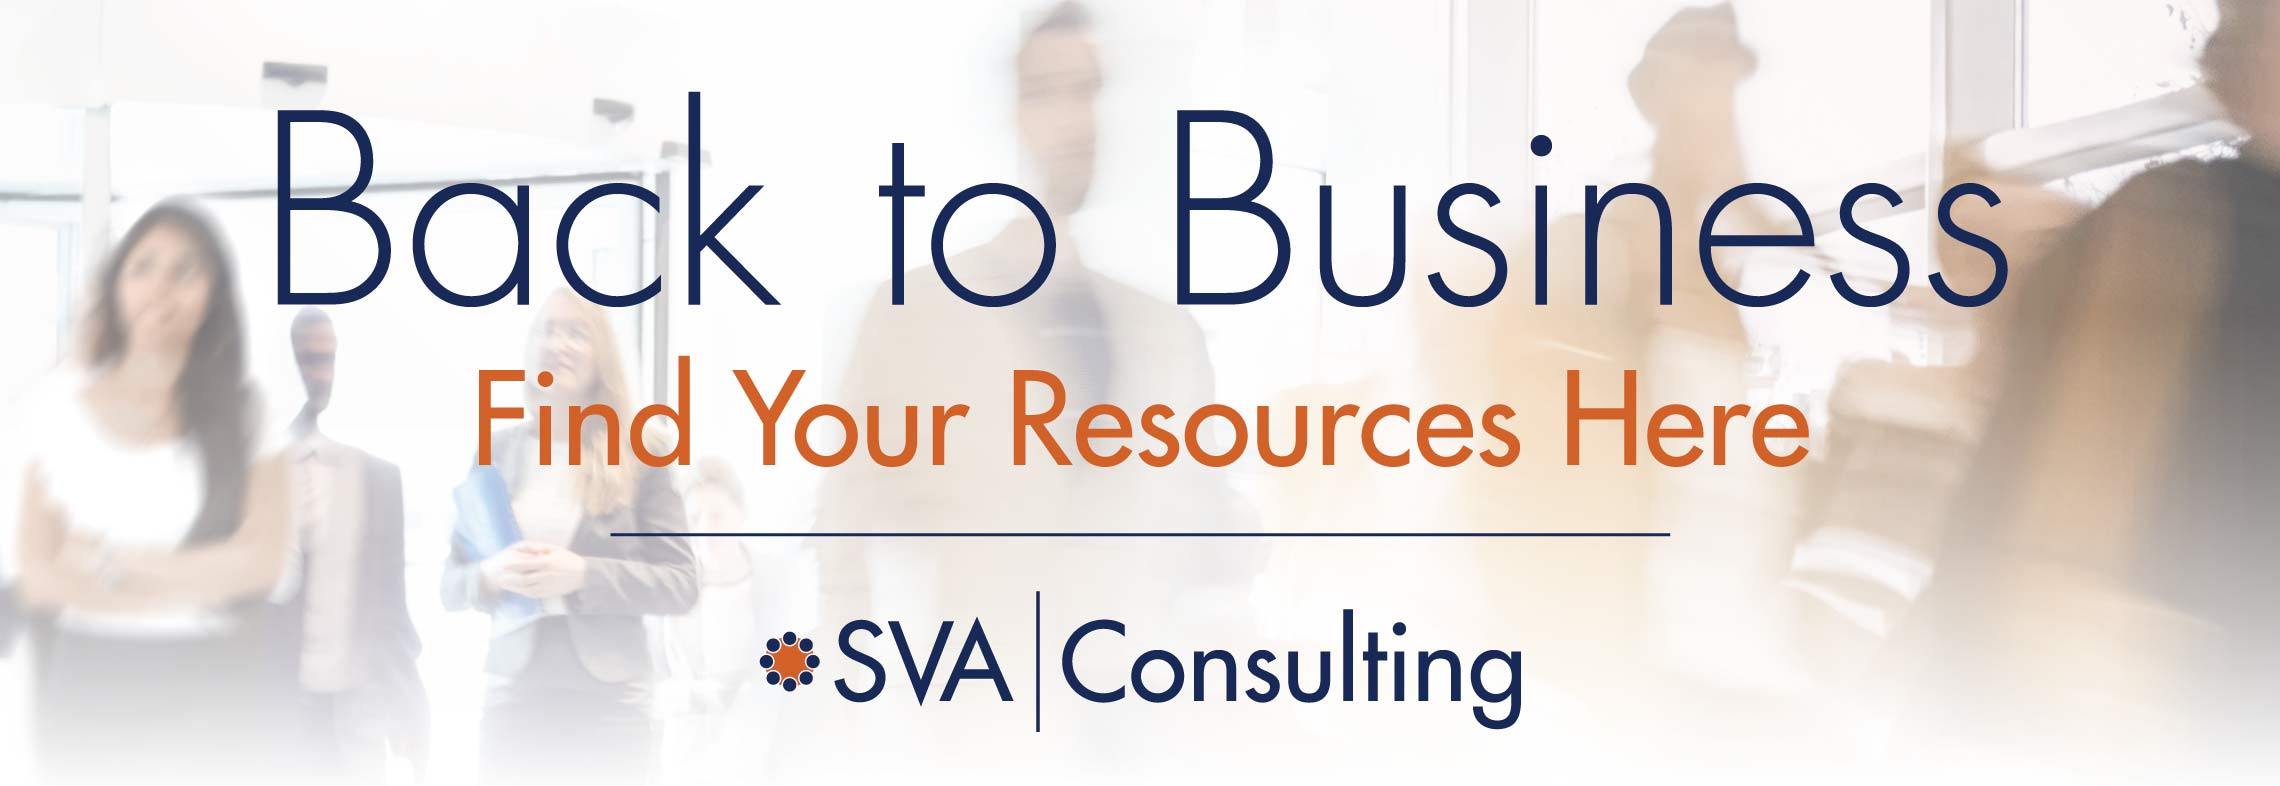 sva-consulting-back-to-business-rescource-lp